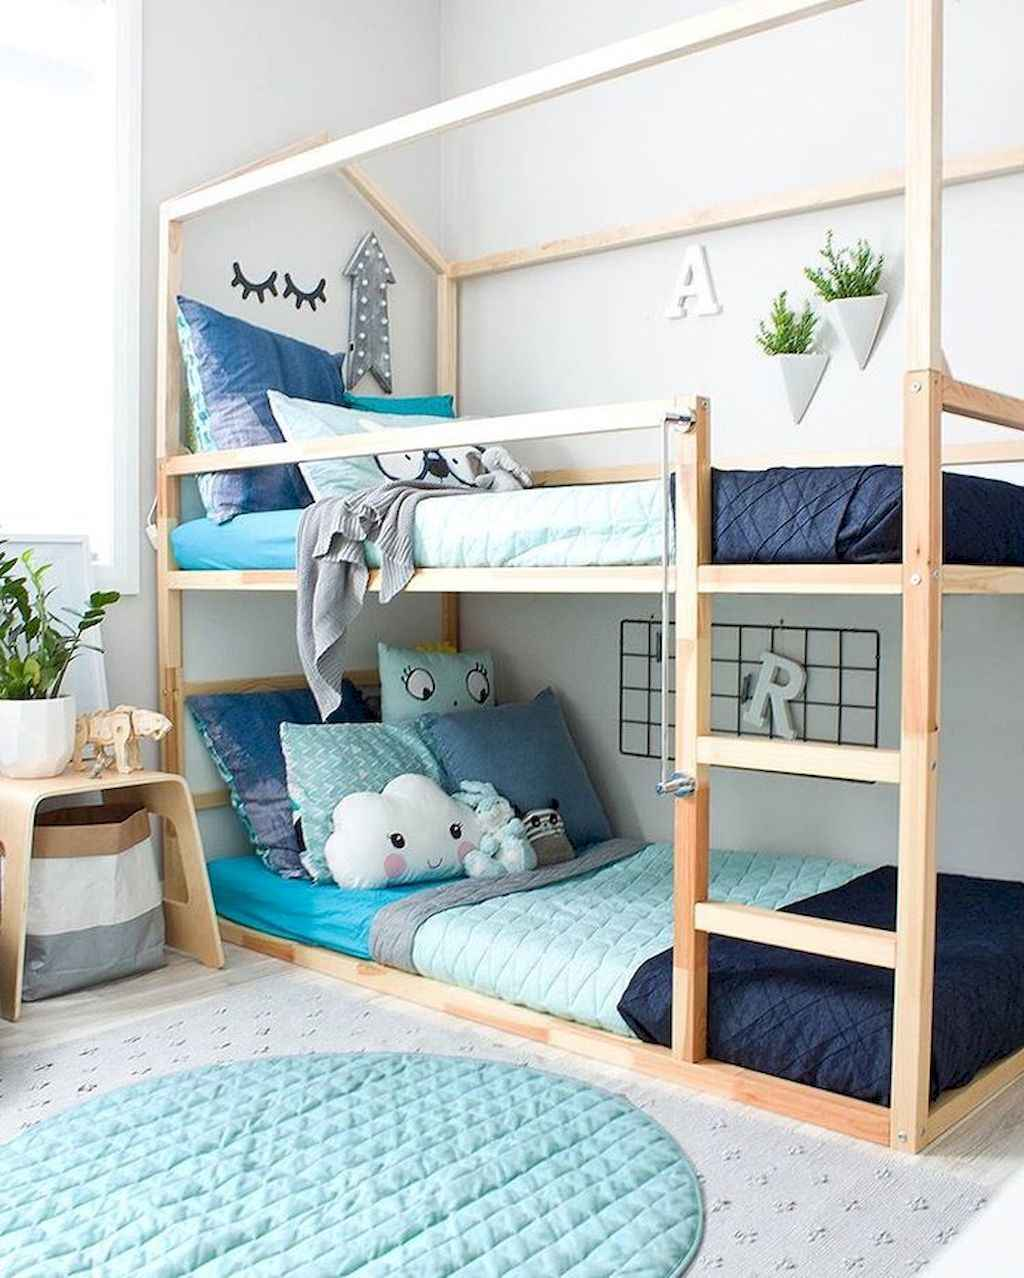 Awesome ideas bedroom for kids (41)